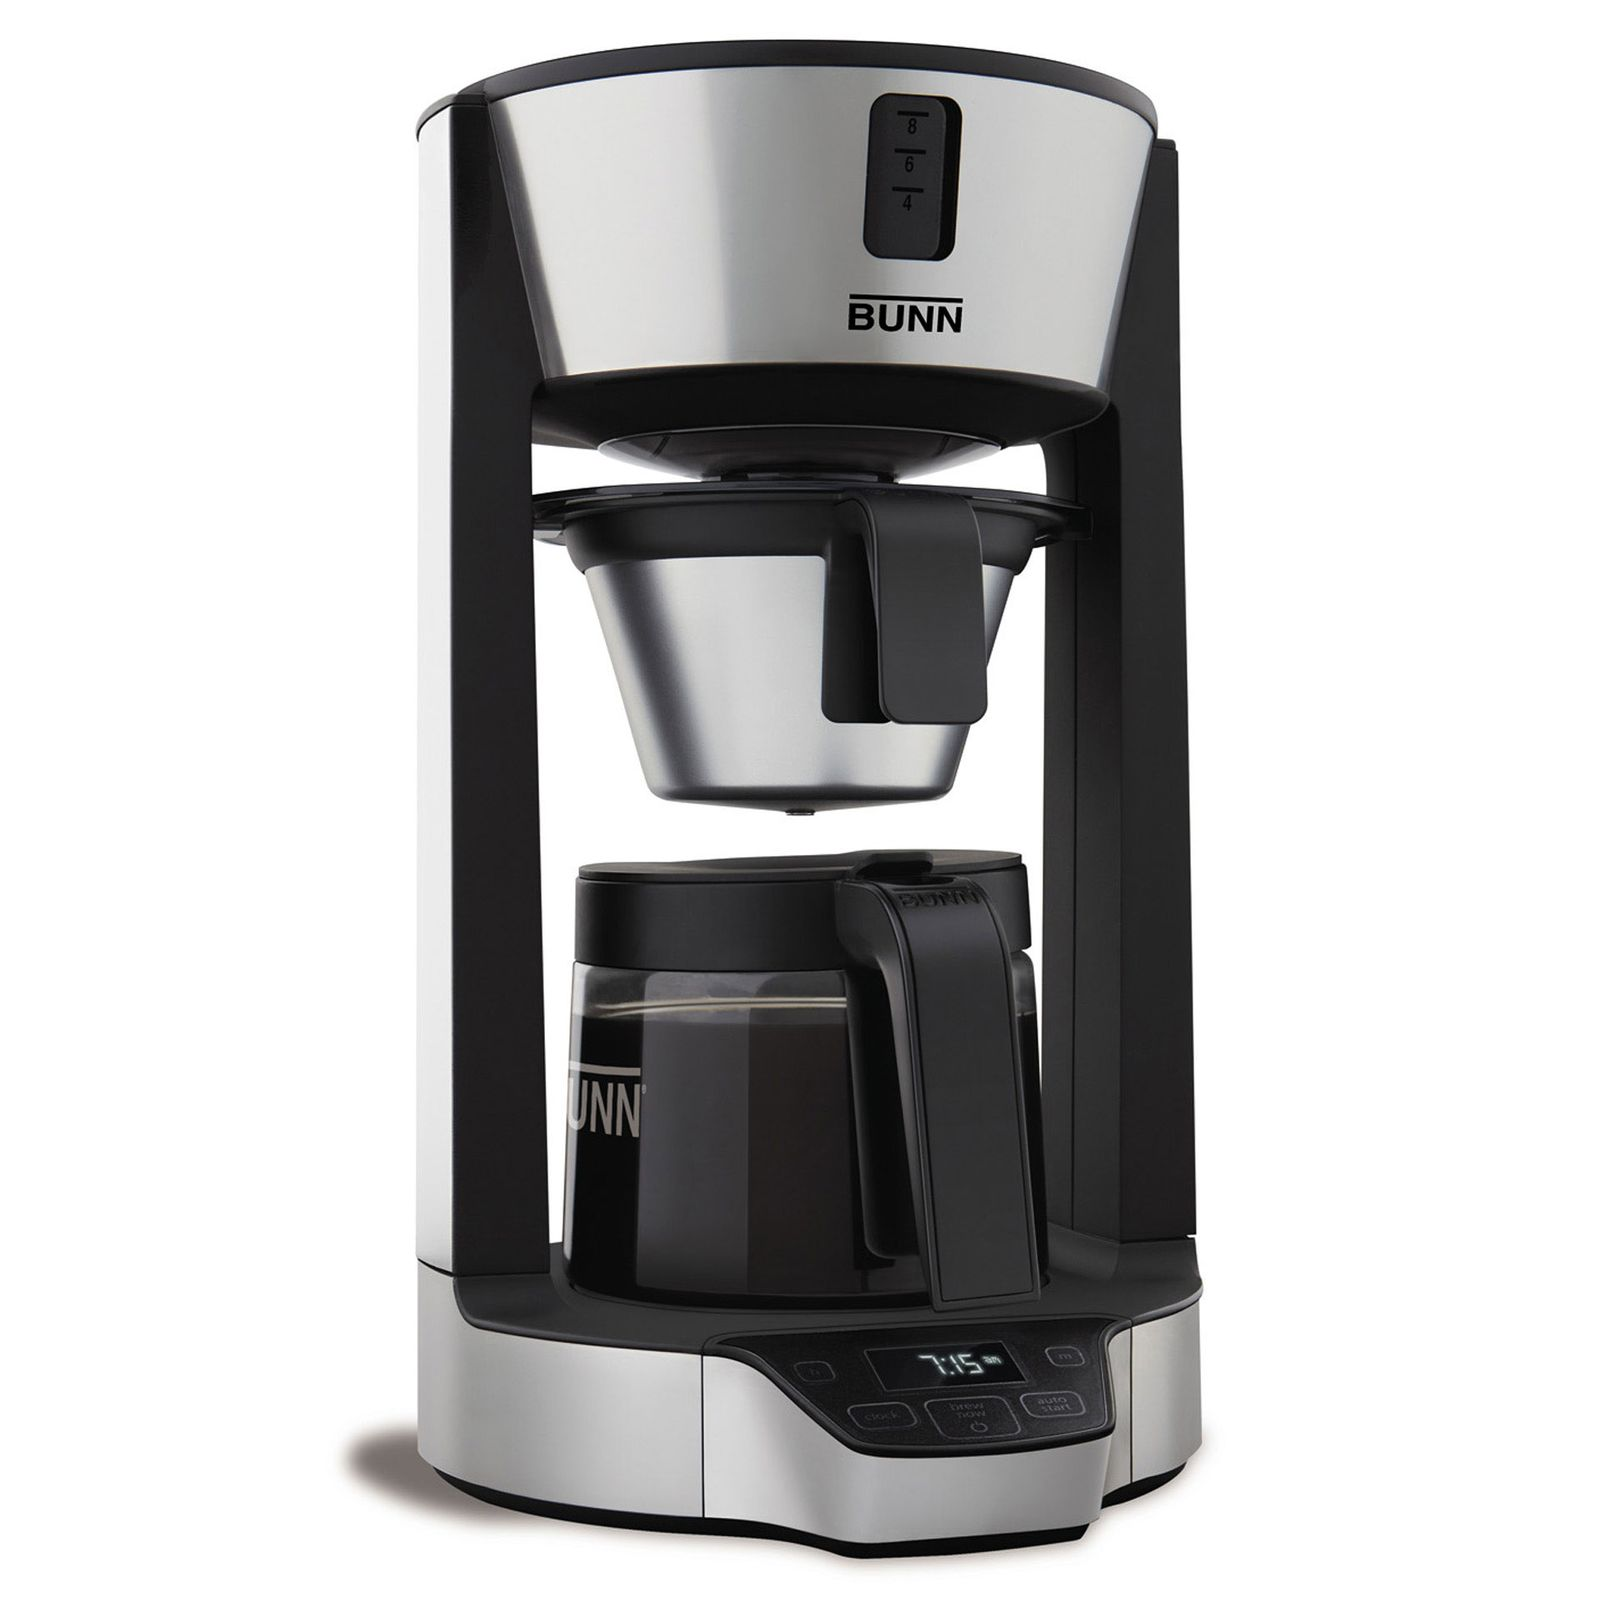 550052b52cea4-ghk-bunn-phase-brew-hg-8-cup-coffee-brewer-s2.jpg